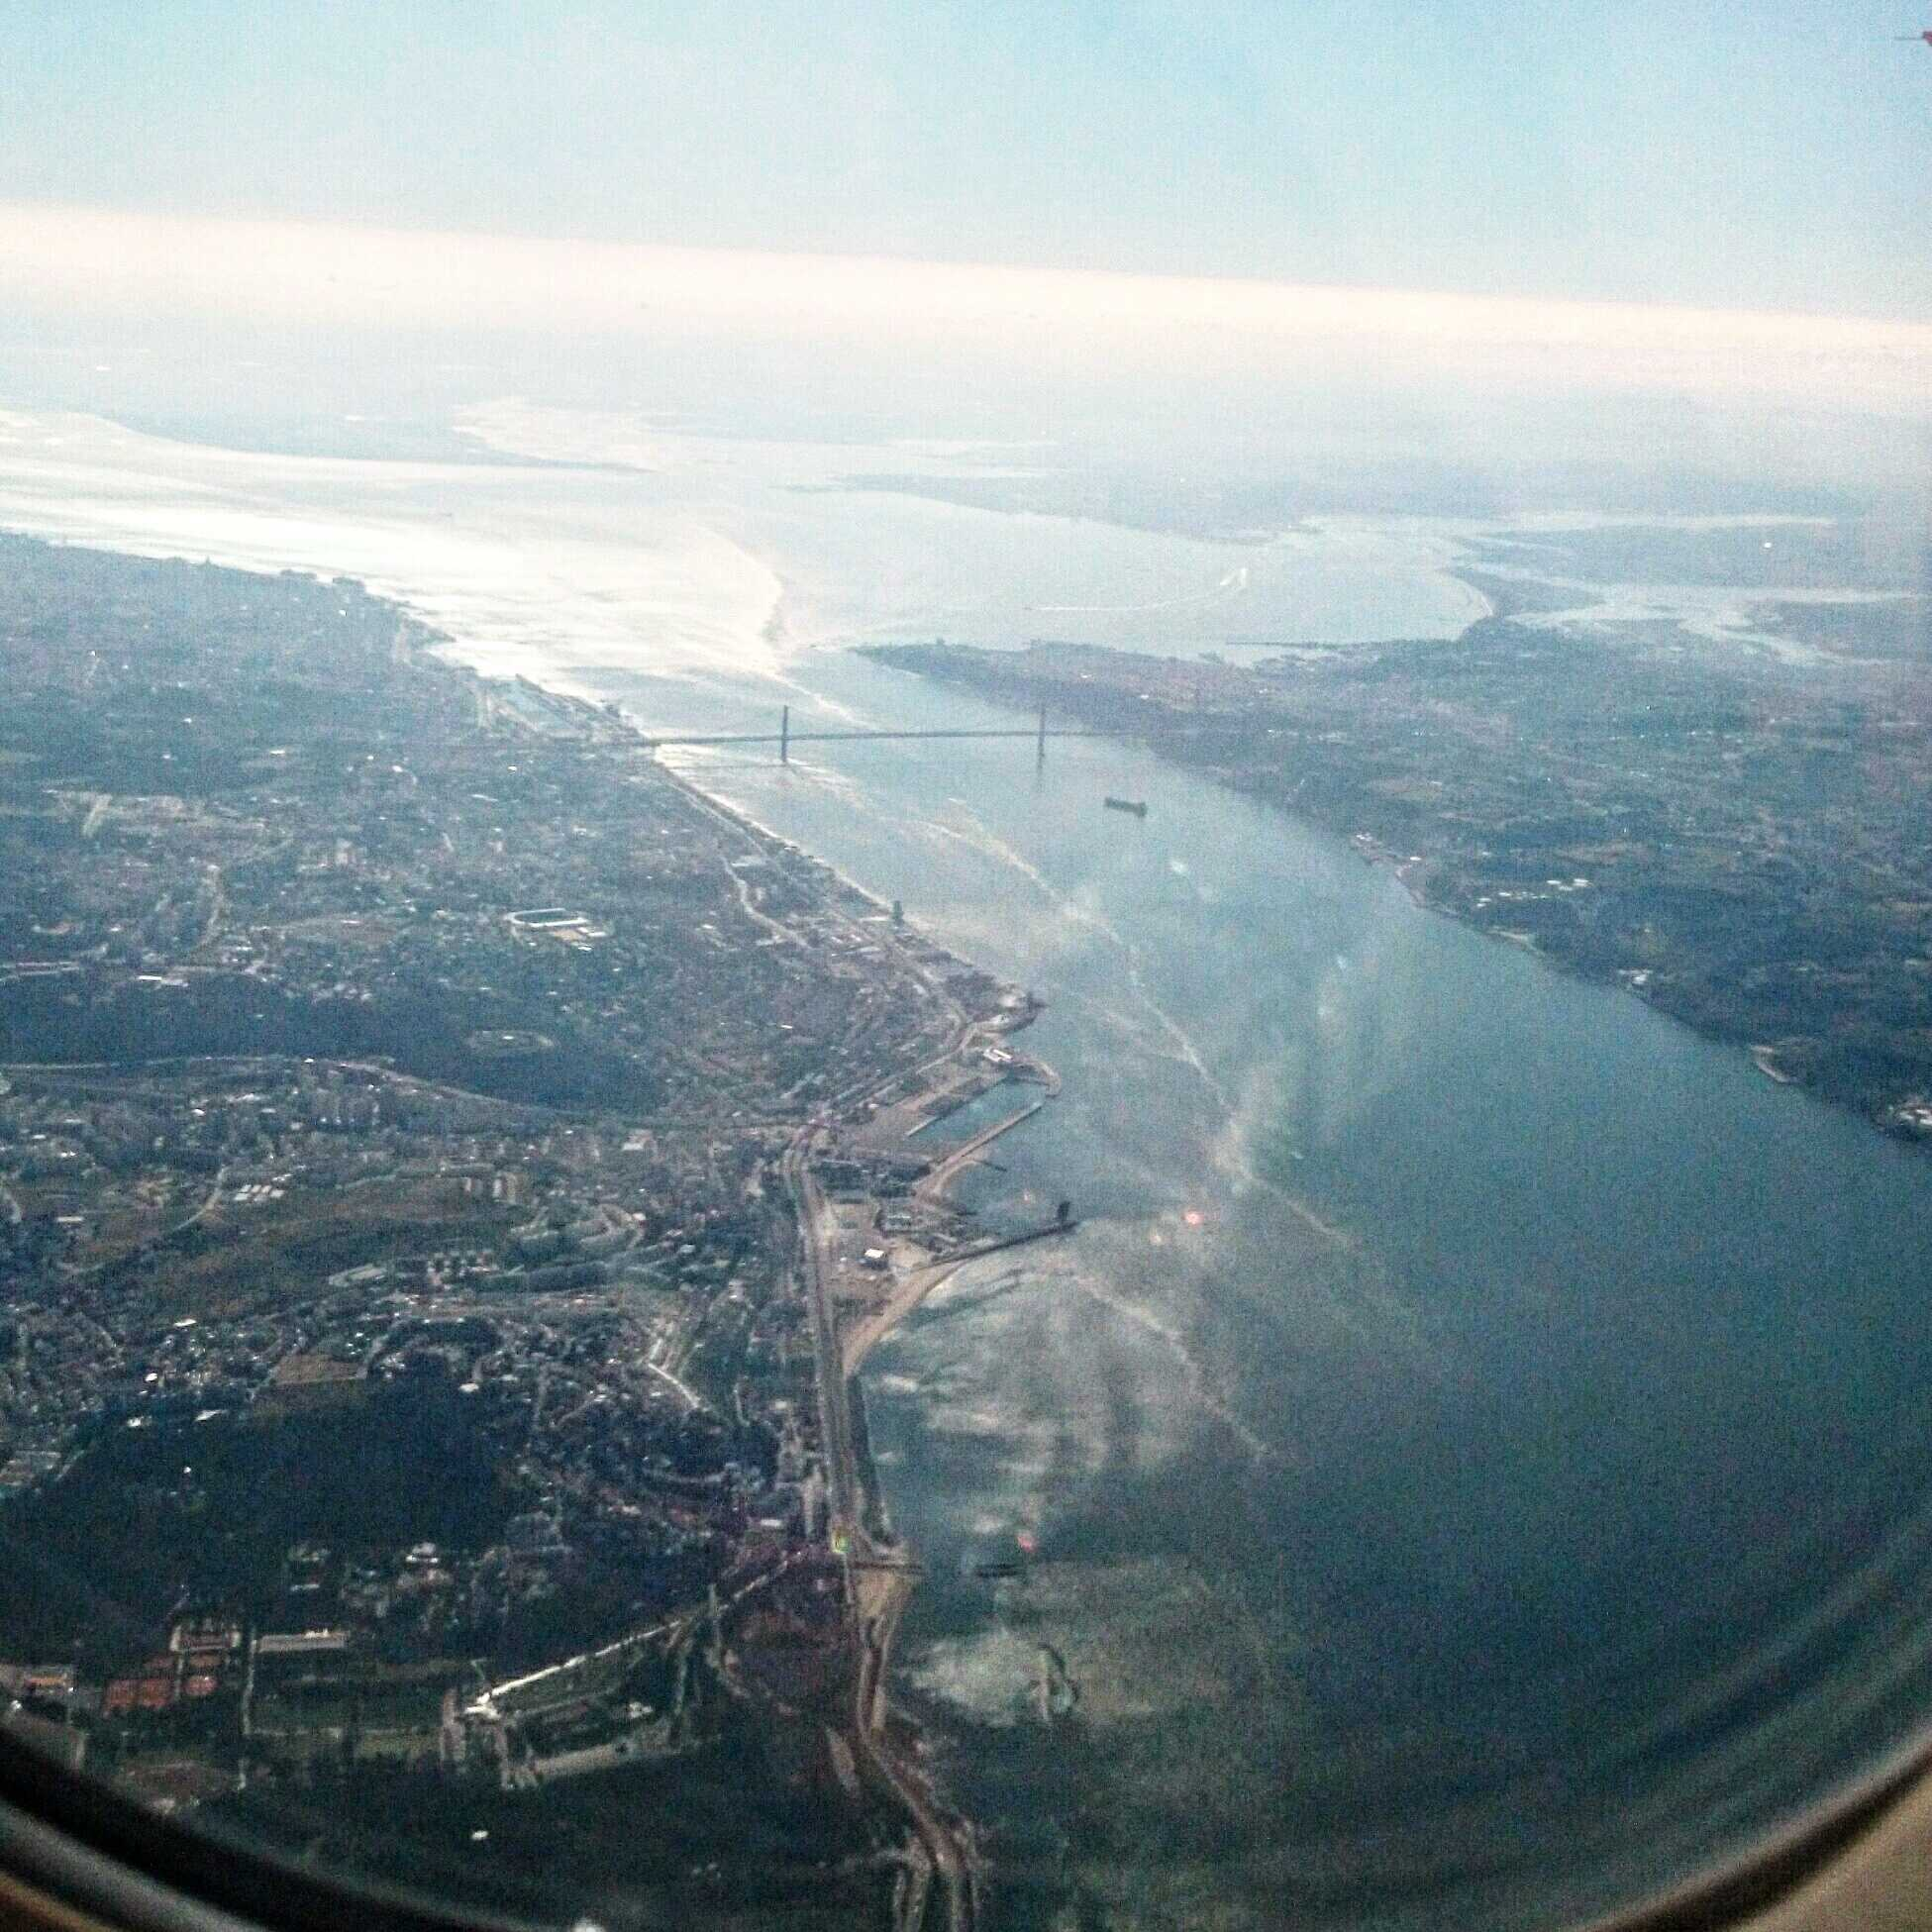 best plane window seat view between London and Lisbon